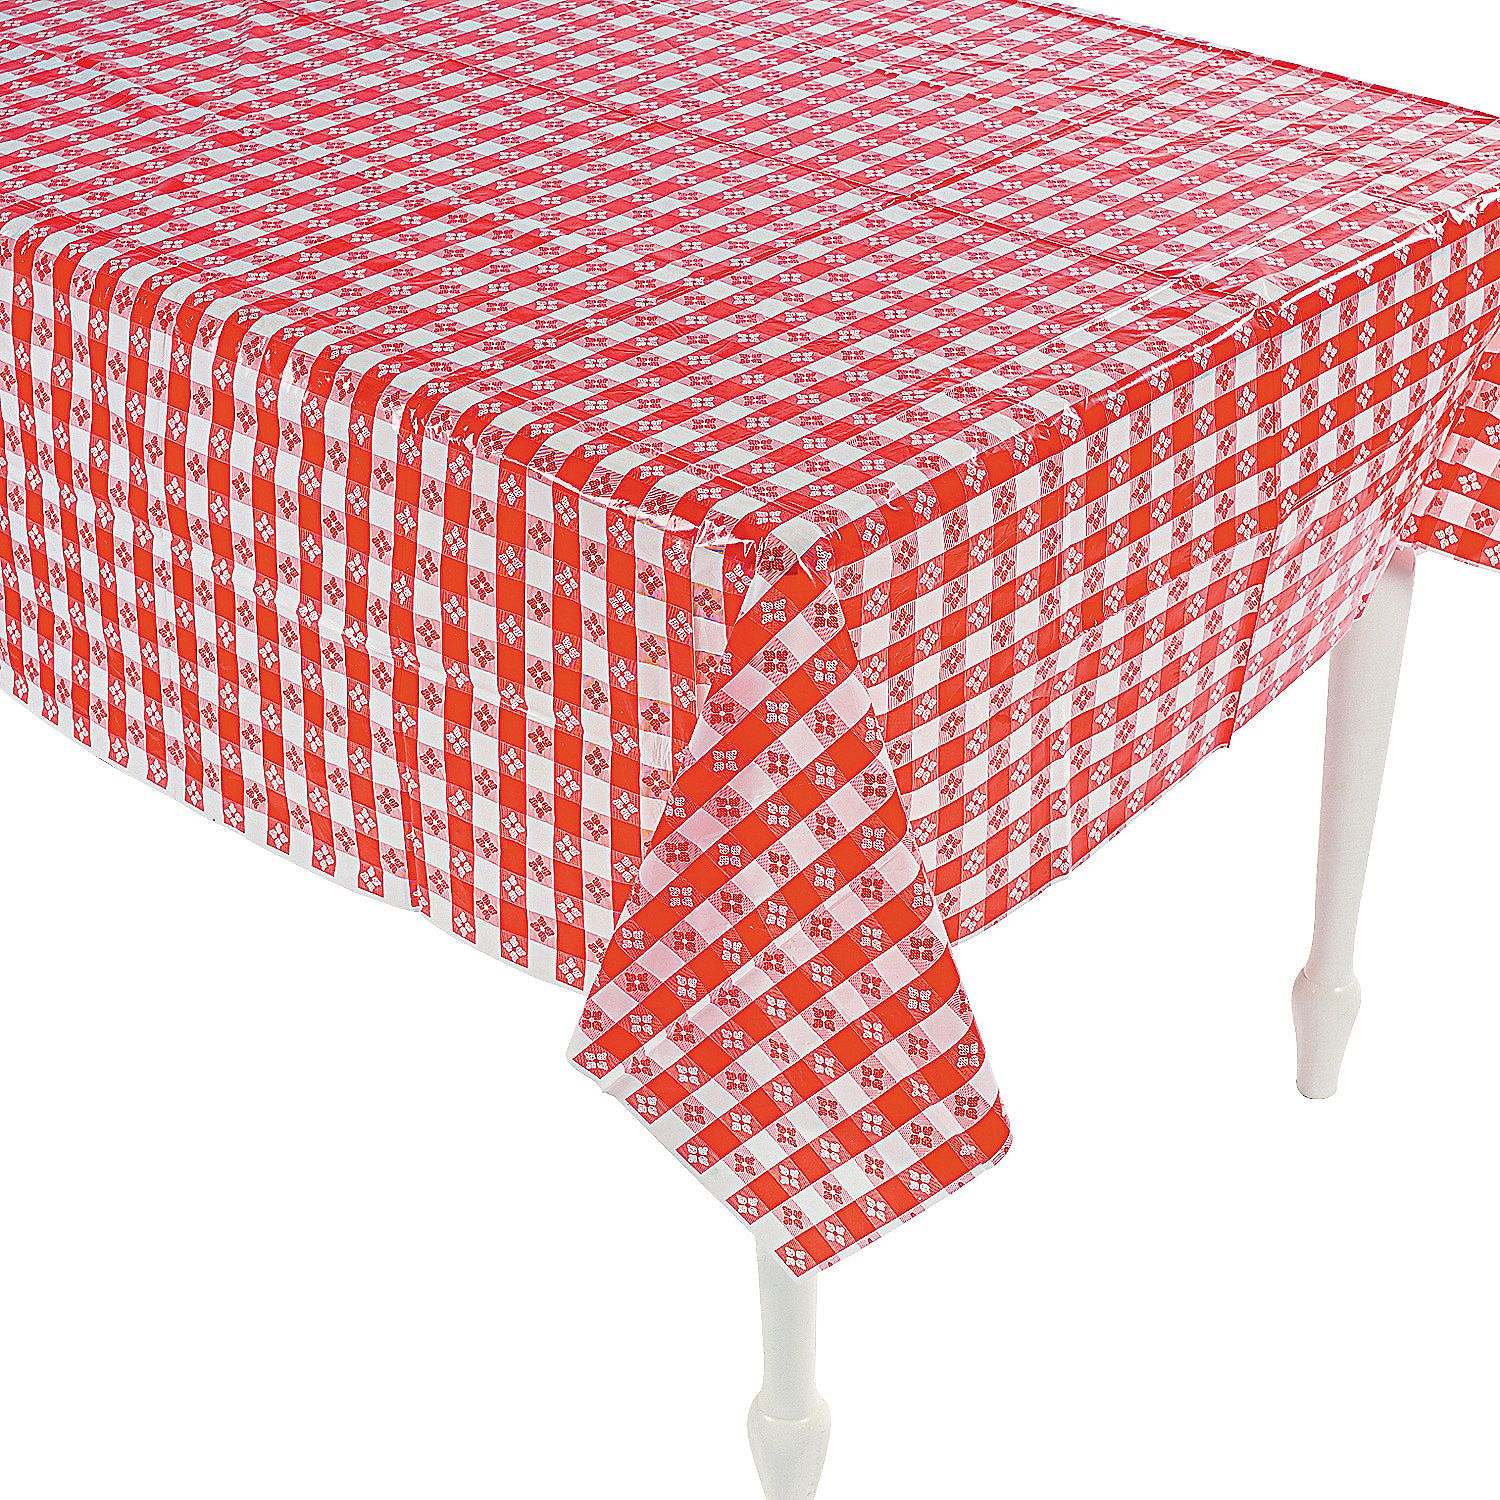 Red & White Checkered Tablecloths - OrientalTrading.com ... - photo#9